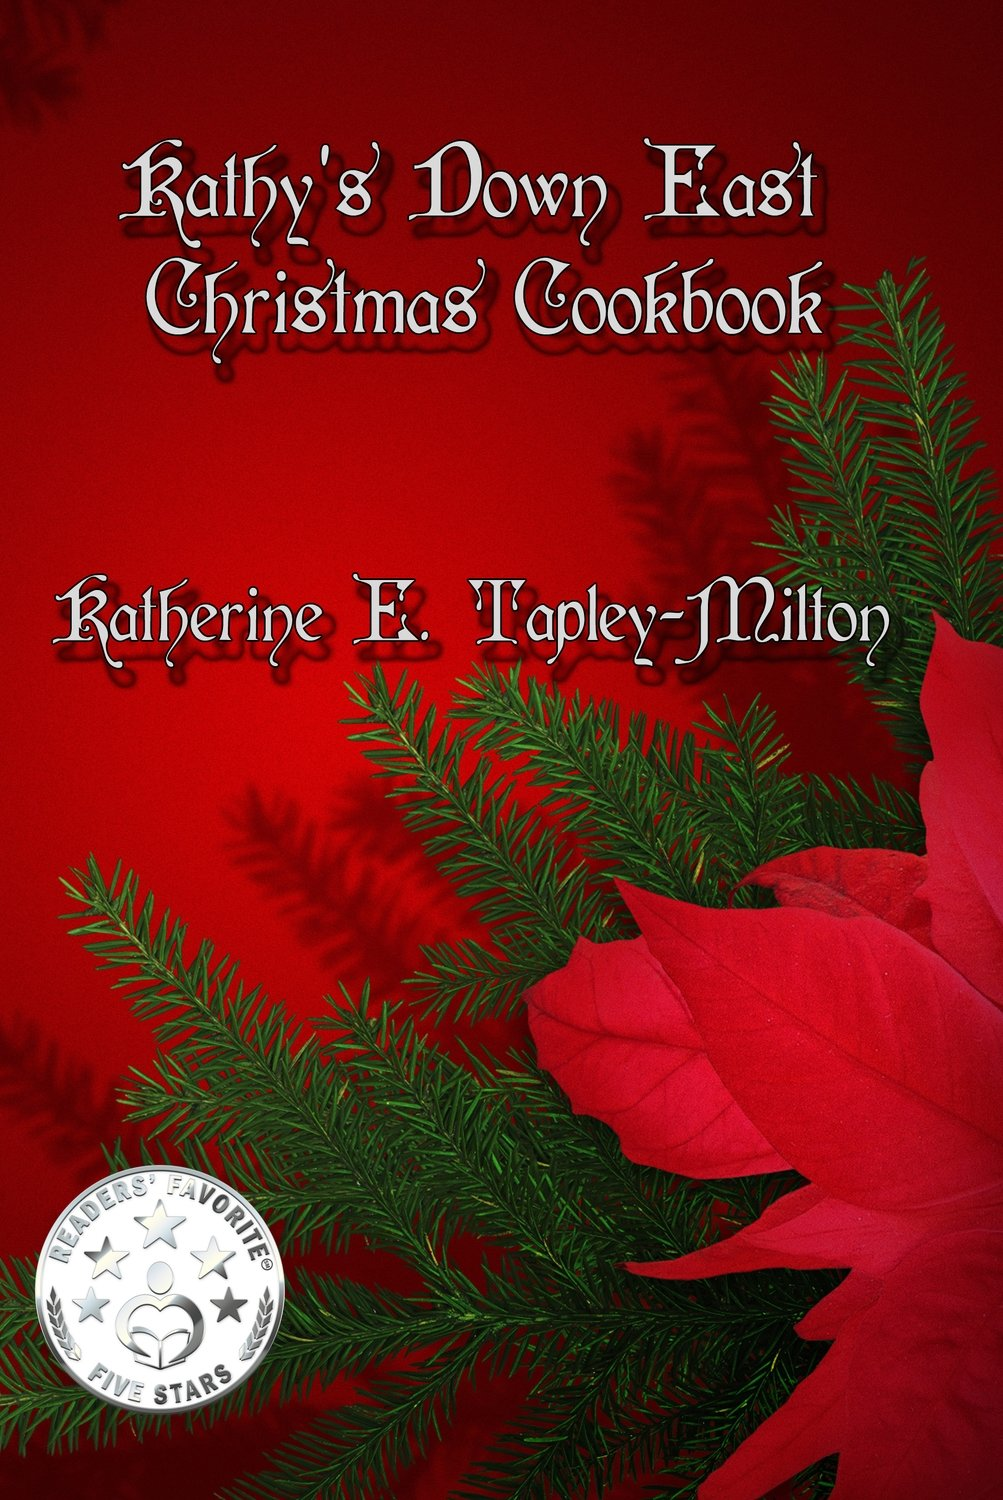 Kathy's Down East Christmas Cookbook